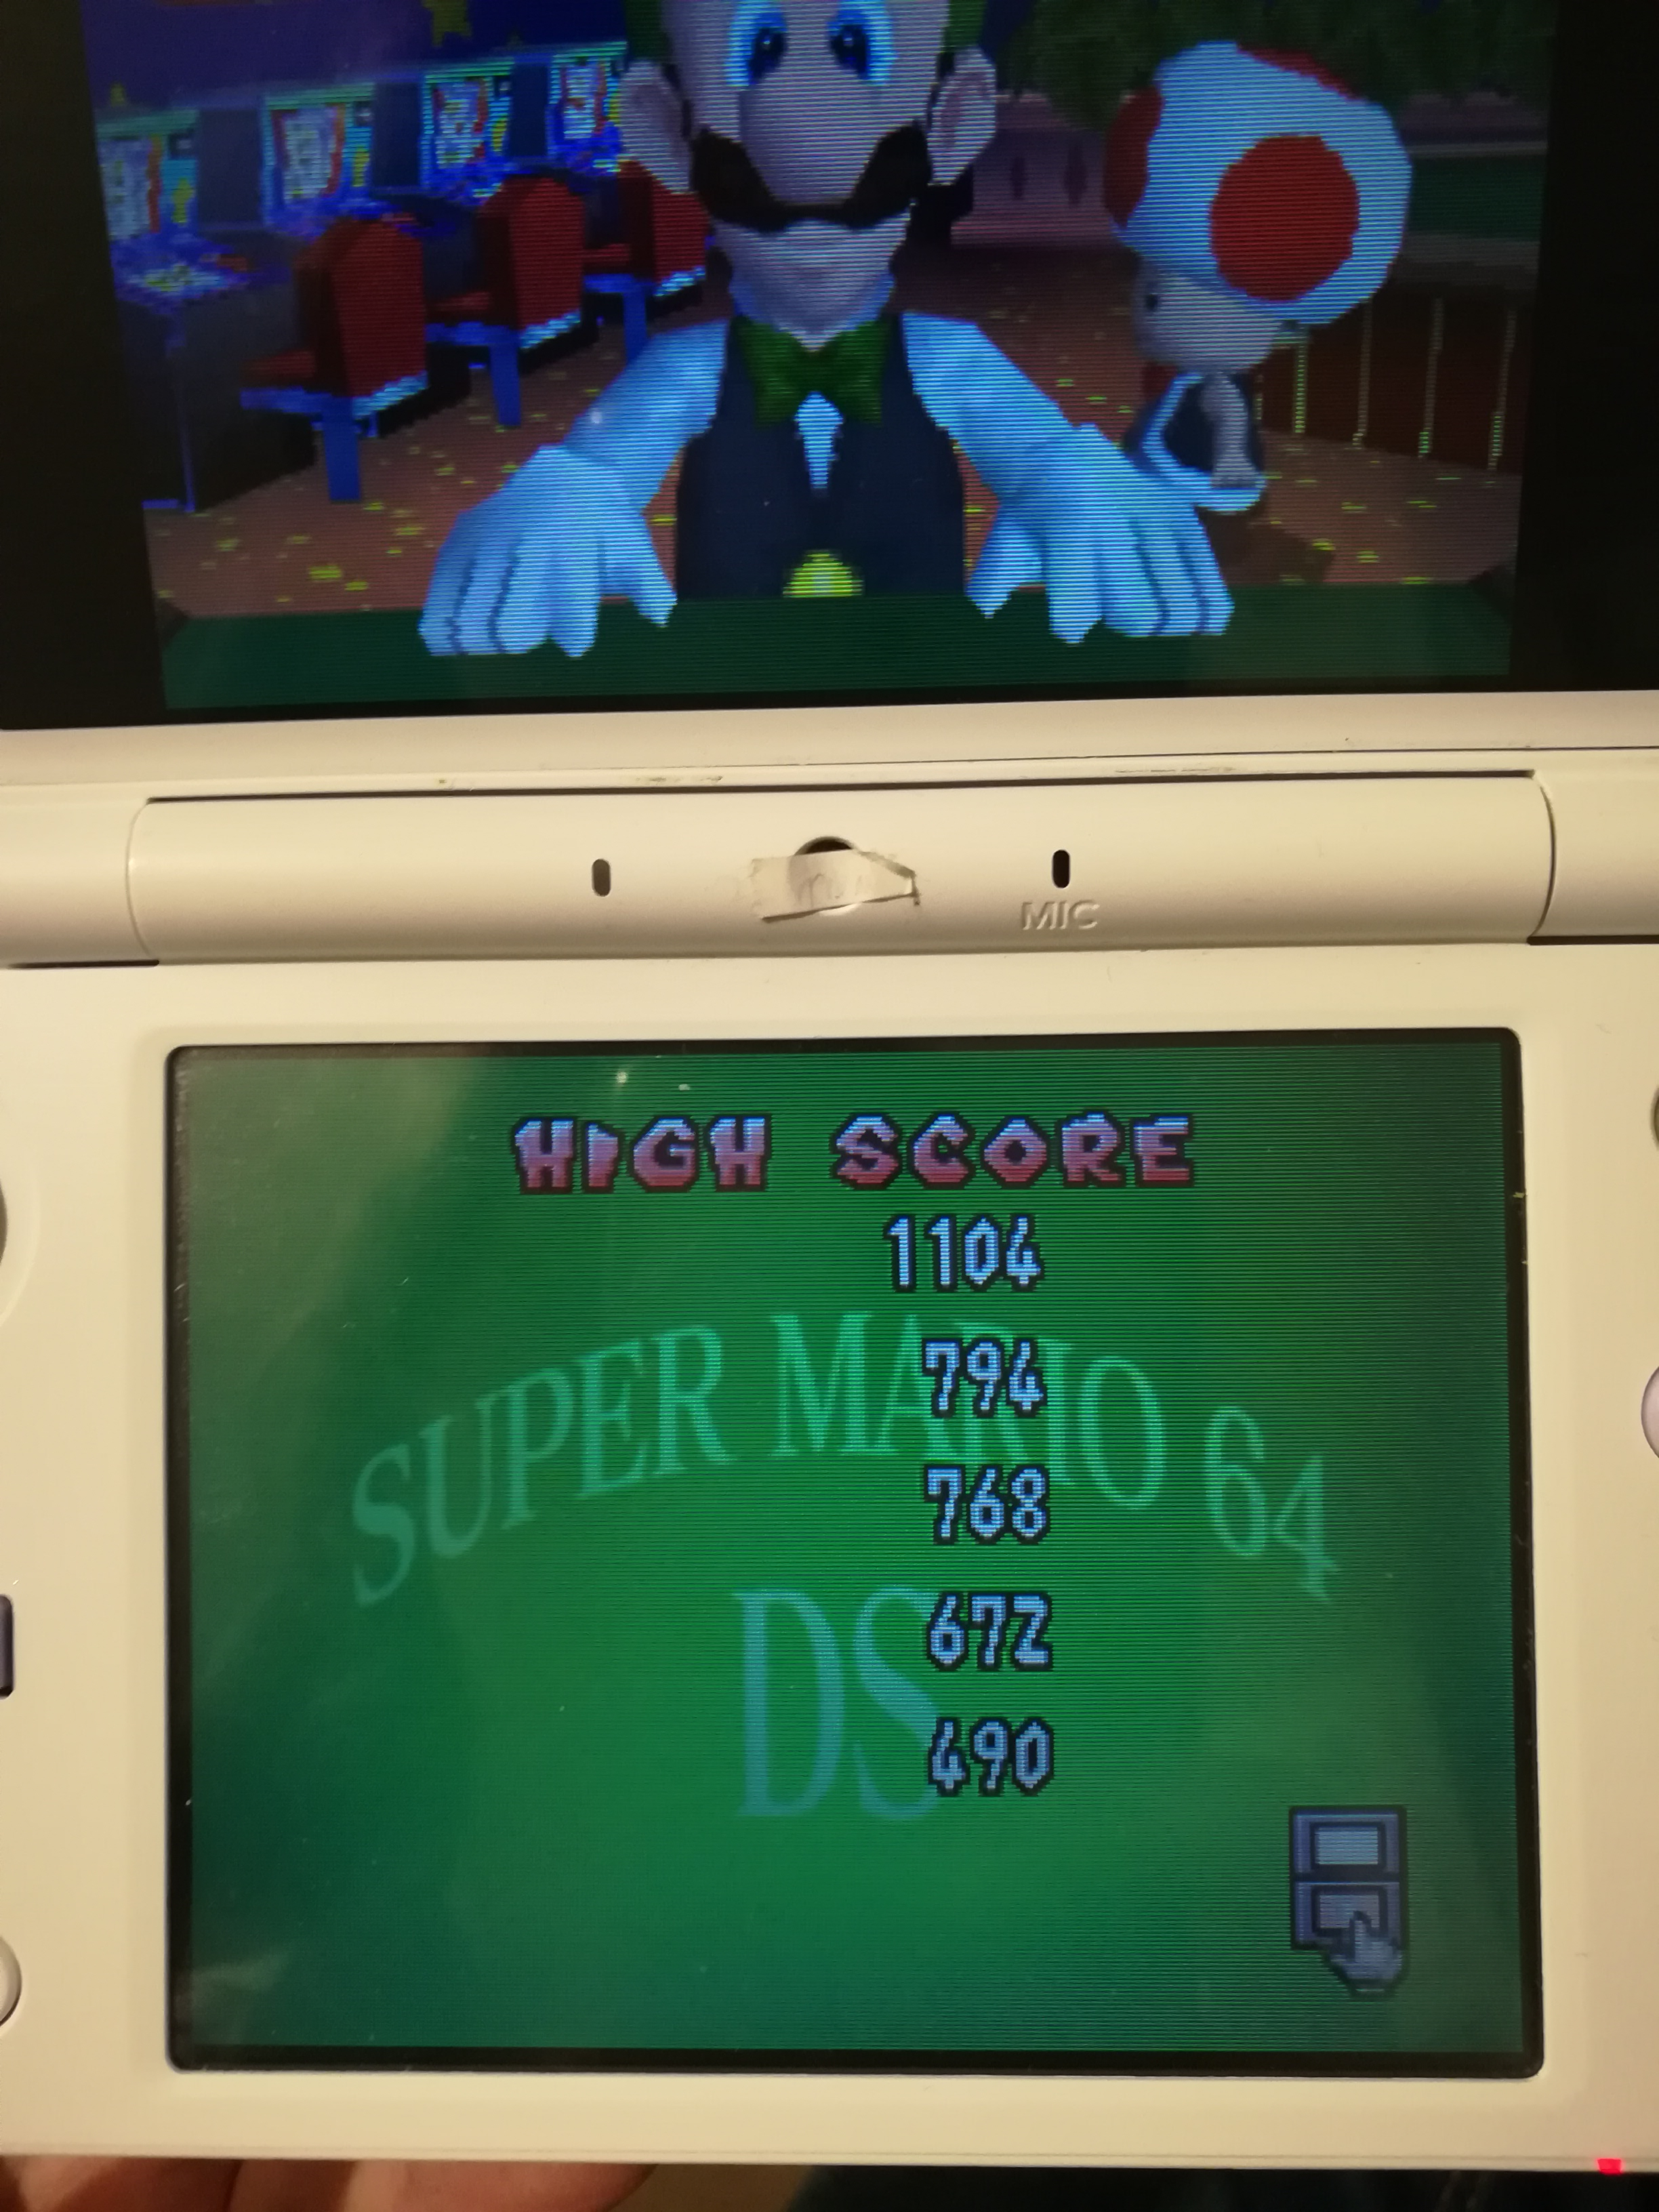 Mimitchi: Super Mario 64 DS: Pair-a-Gone and On (Nintendo DS) 1,104 points on 2020-02-02 14:28:52